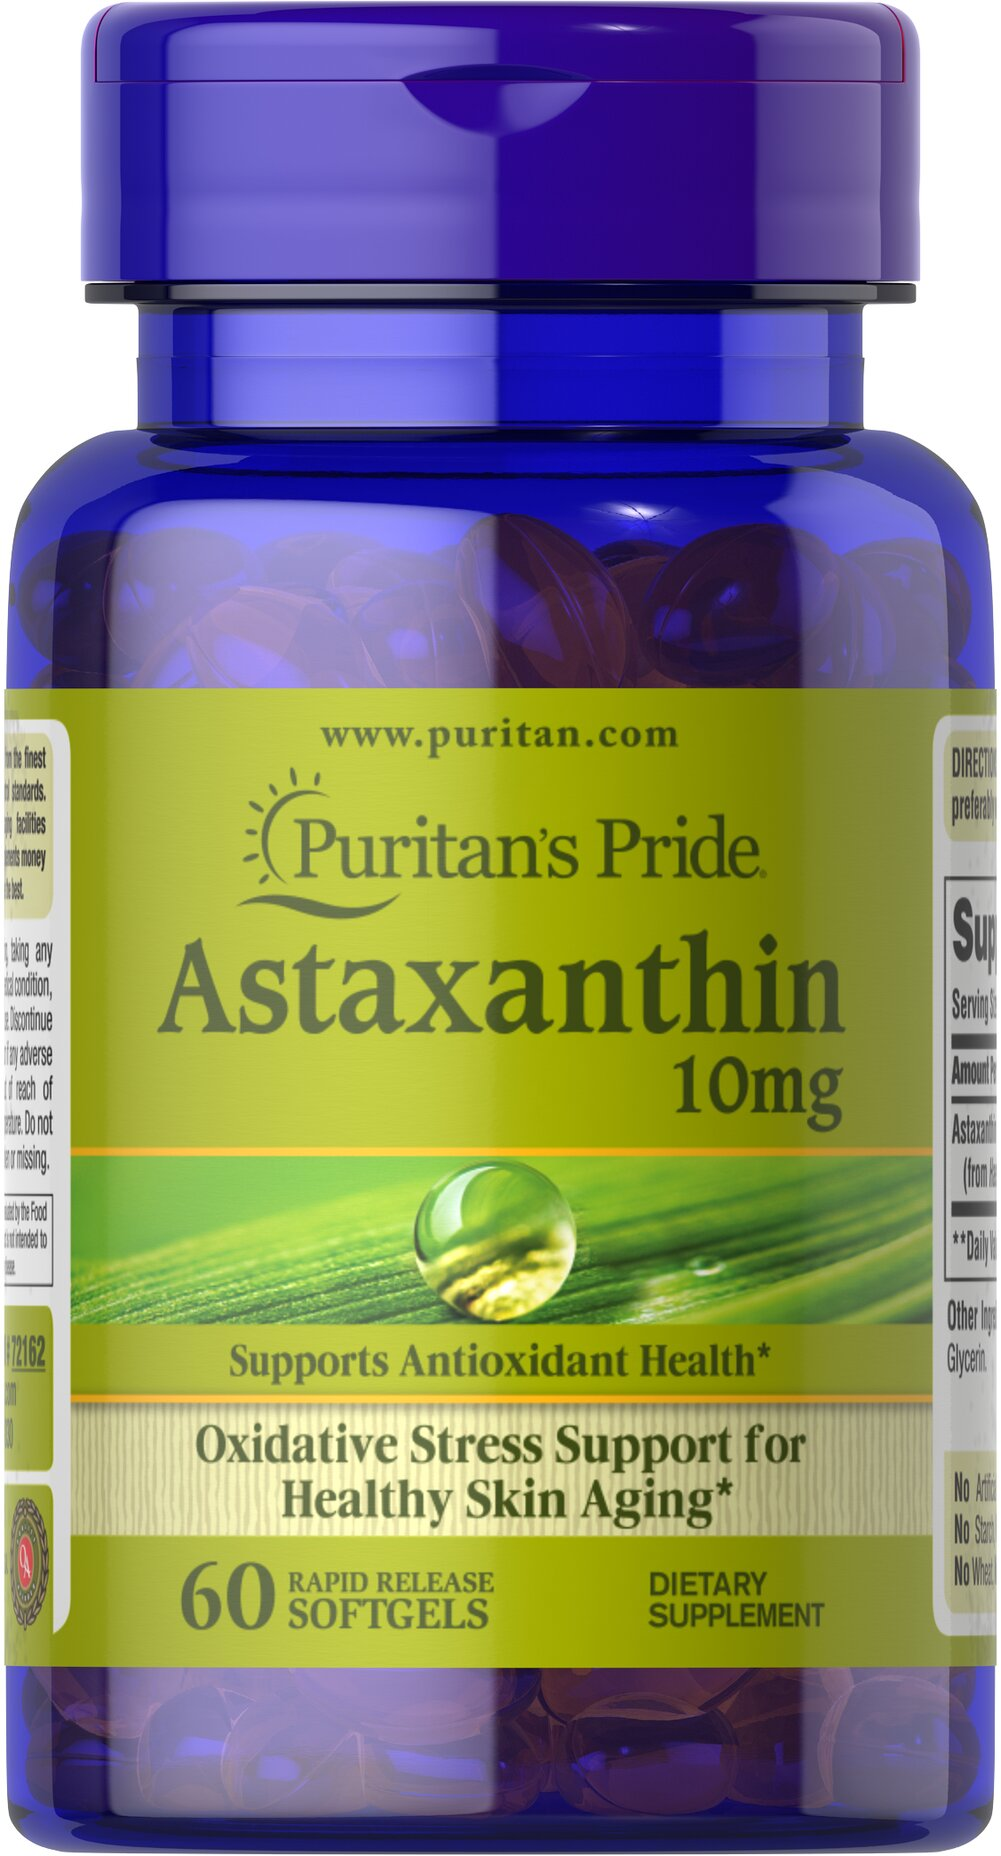 Astaxanthin 10 mg <p>Powerful Antioxidant**</p>  <p>Suited for Stressful Lifestyles**</p>    <p>Astaxanthin promotes antioxidant health, which helps fight the cell damaging free radicals that can lead to oxidative stress which may contribute to the premature aging of cells.**</p> 60 Softgels 10 mg $69.99